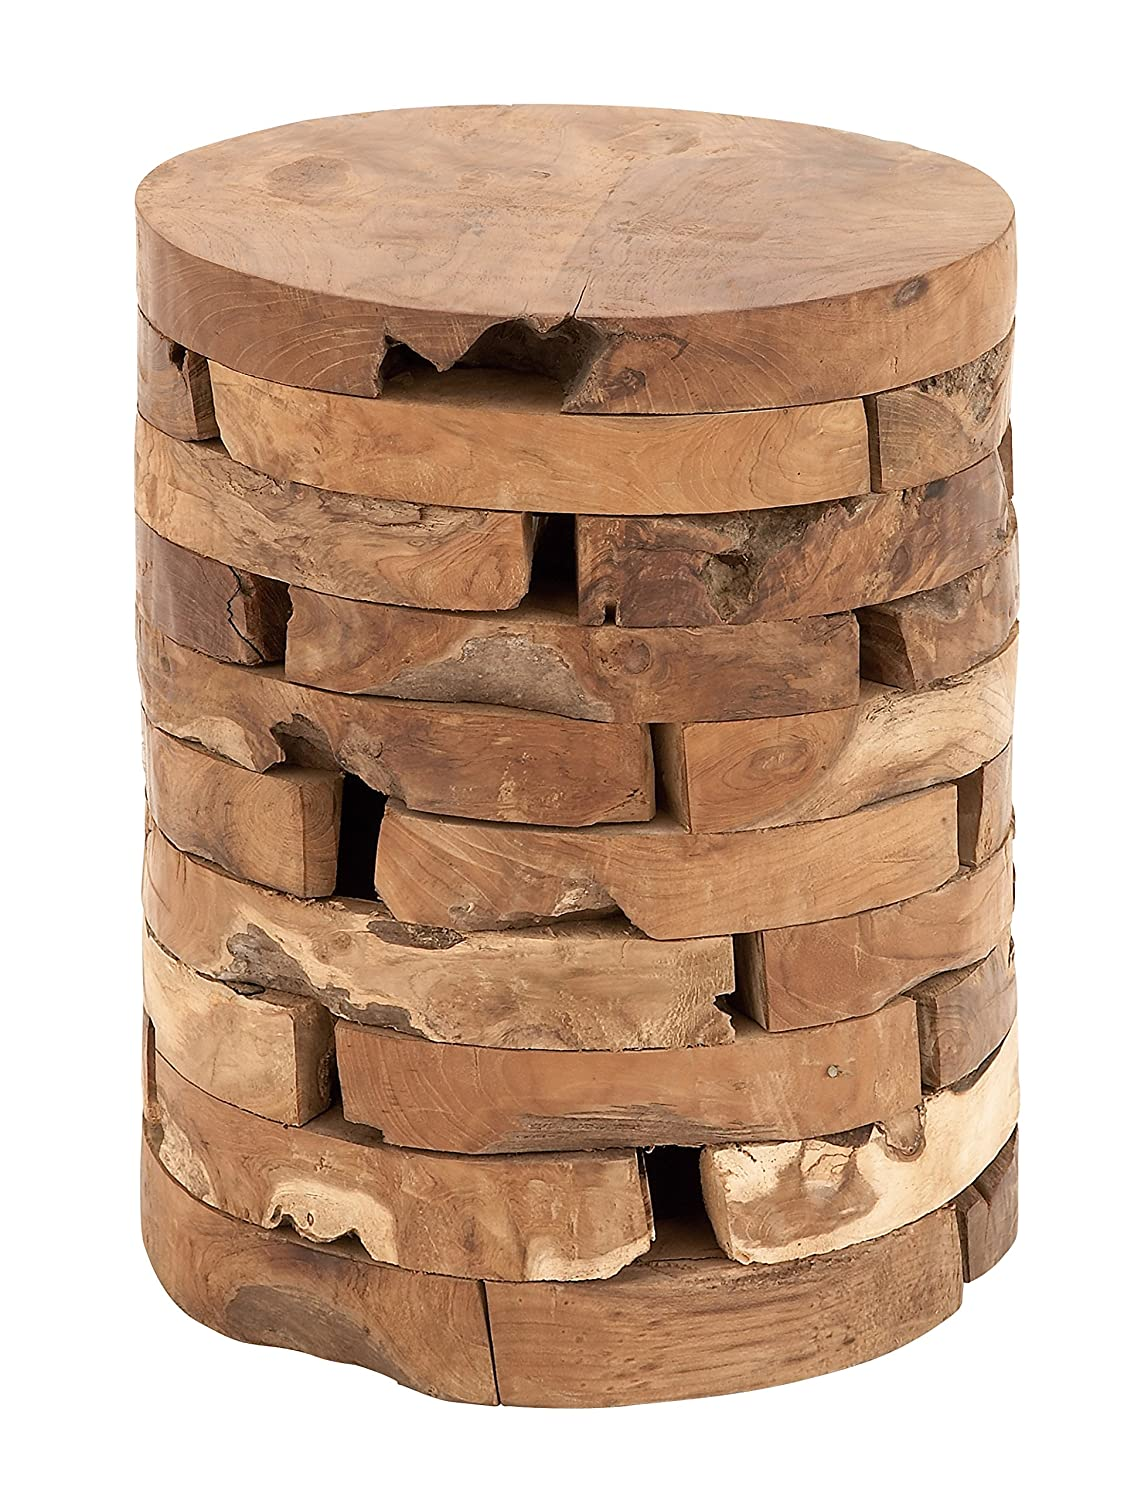 Amazon.com: Deco 79 Teak Wood Stool, 14 by 18-Inch: Kitchen & Dining